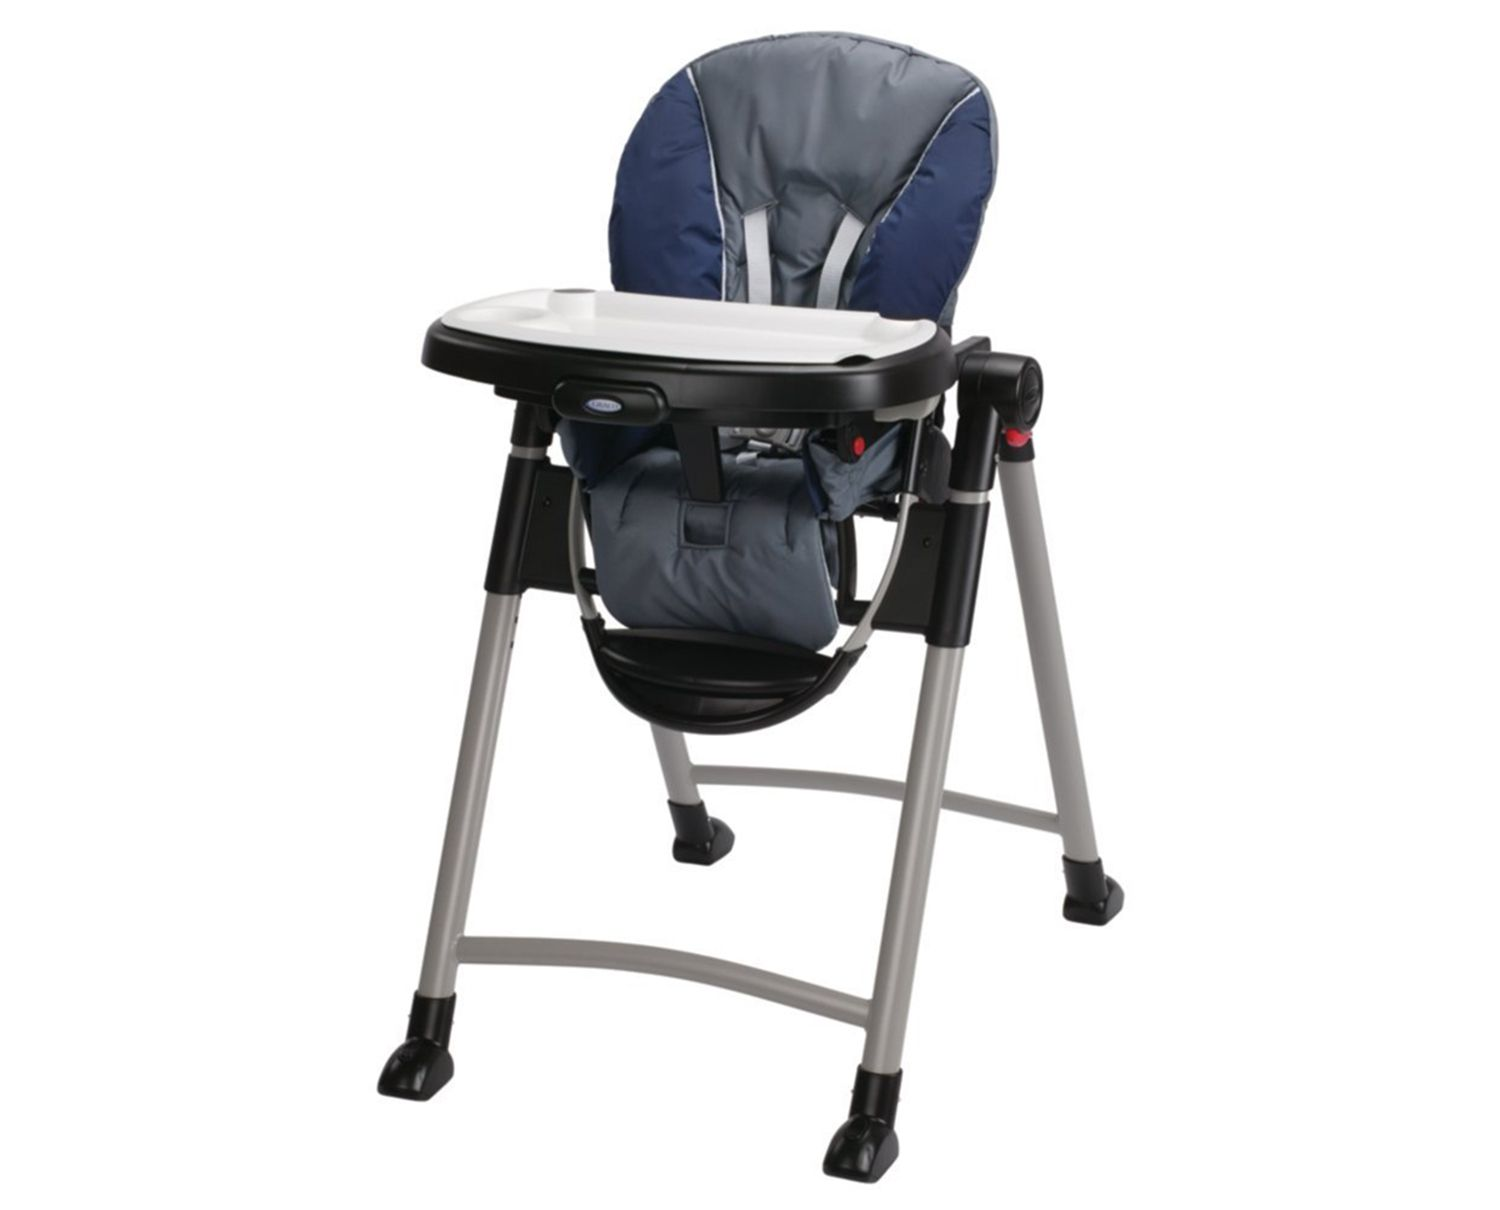 2017 05 graco blossom high chair colors - 2017 05 Graco Blossom High Chair Colors 16